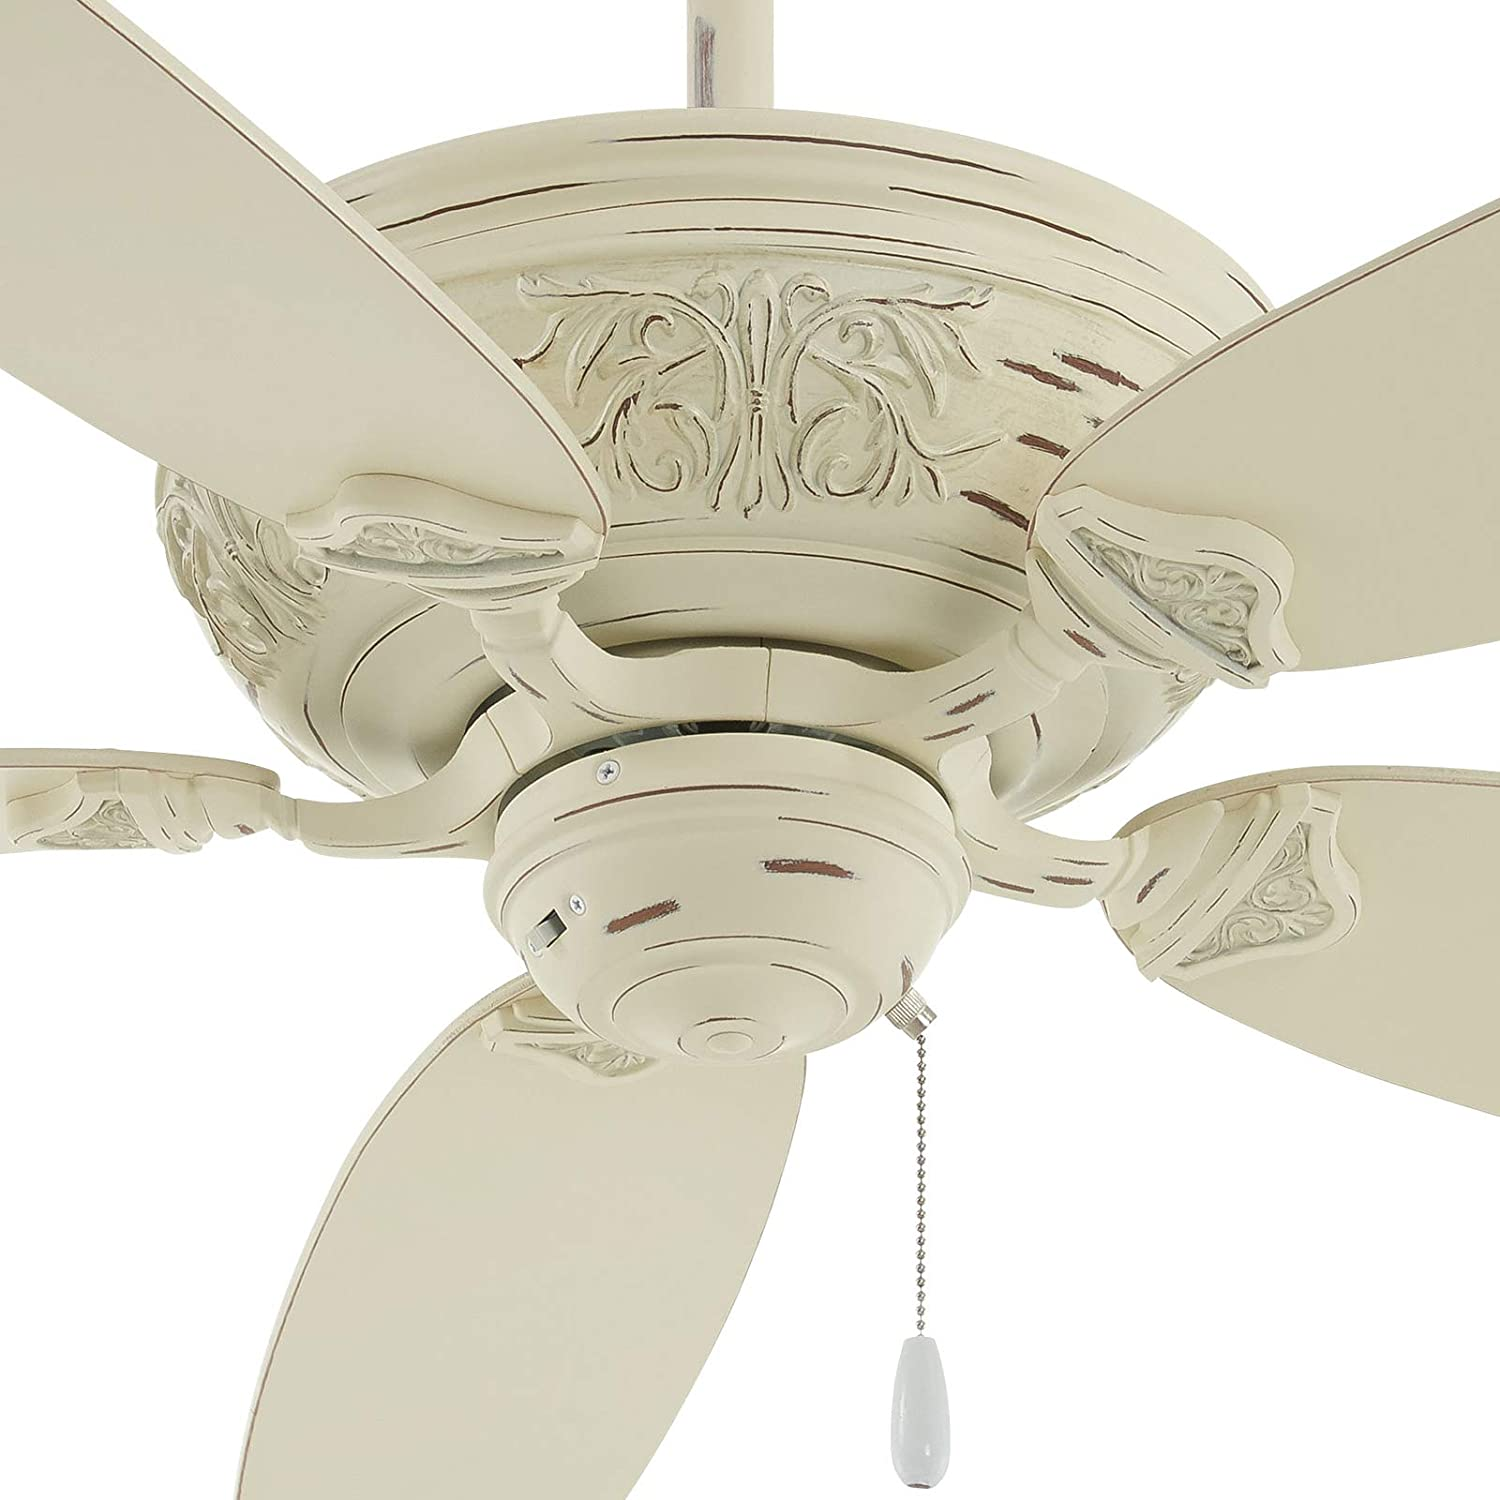 Minka Aire F659 Pbl Classica 54 Inch Pull Chain Ceiling Fan In Provencial Blanc Finish Amazon Com